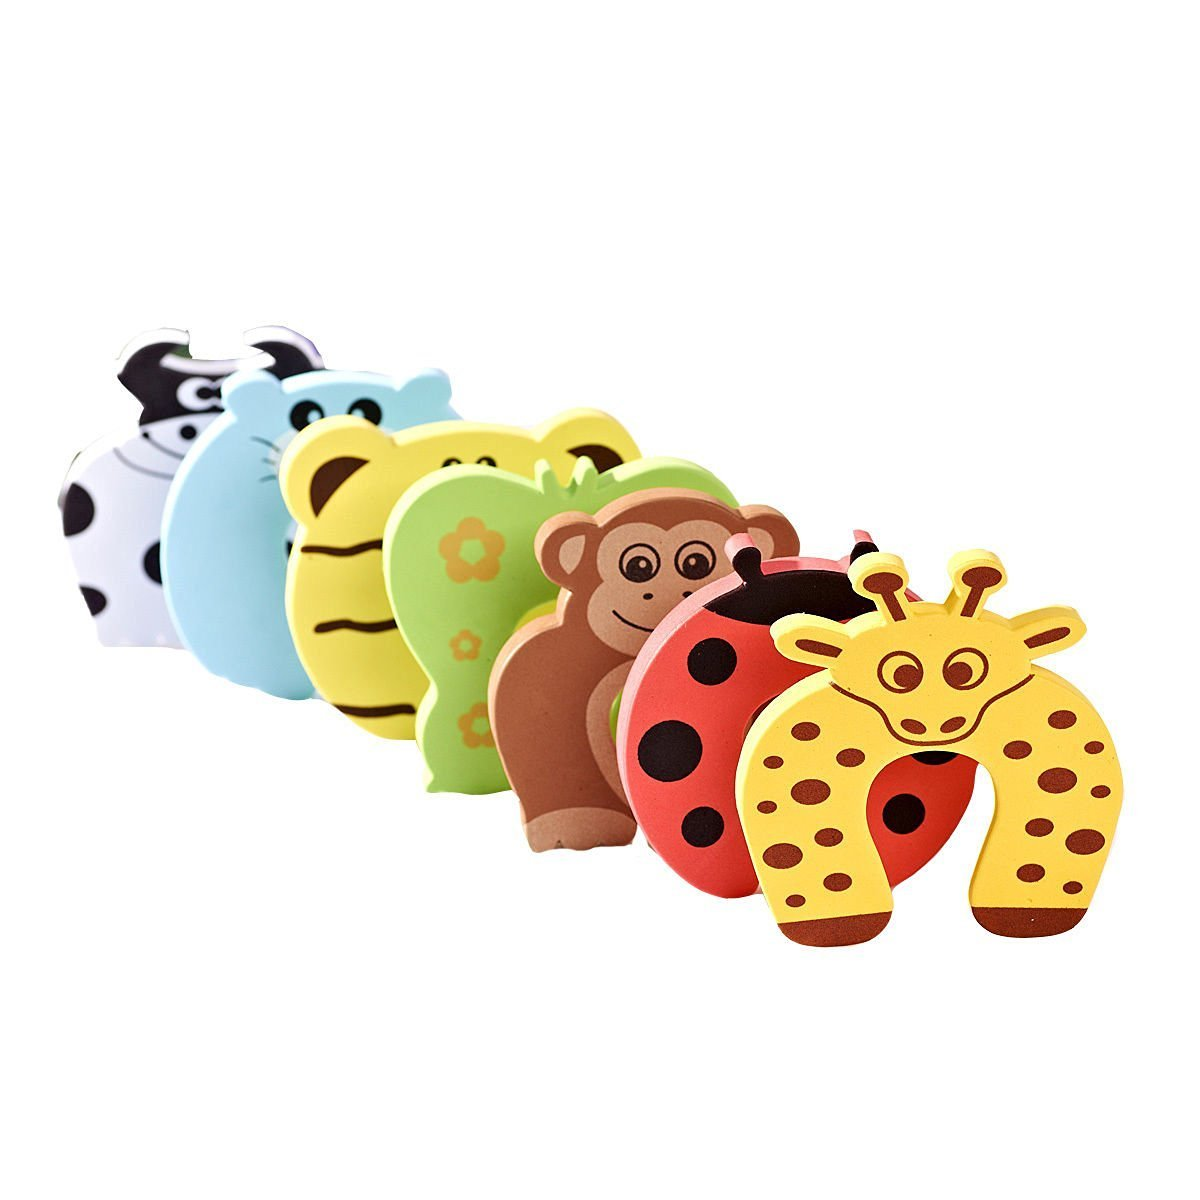 Ancdream 6x Baby safety Foam Door Stoppers Animal Designs